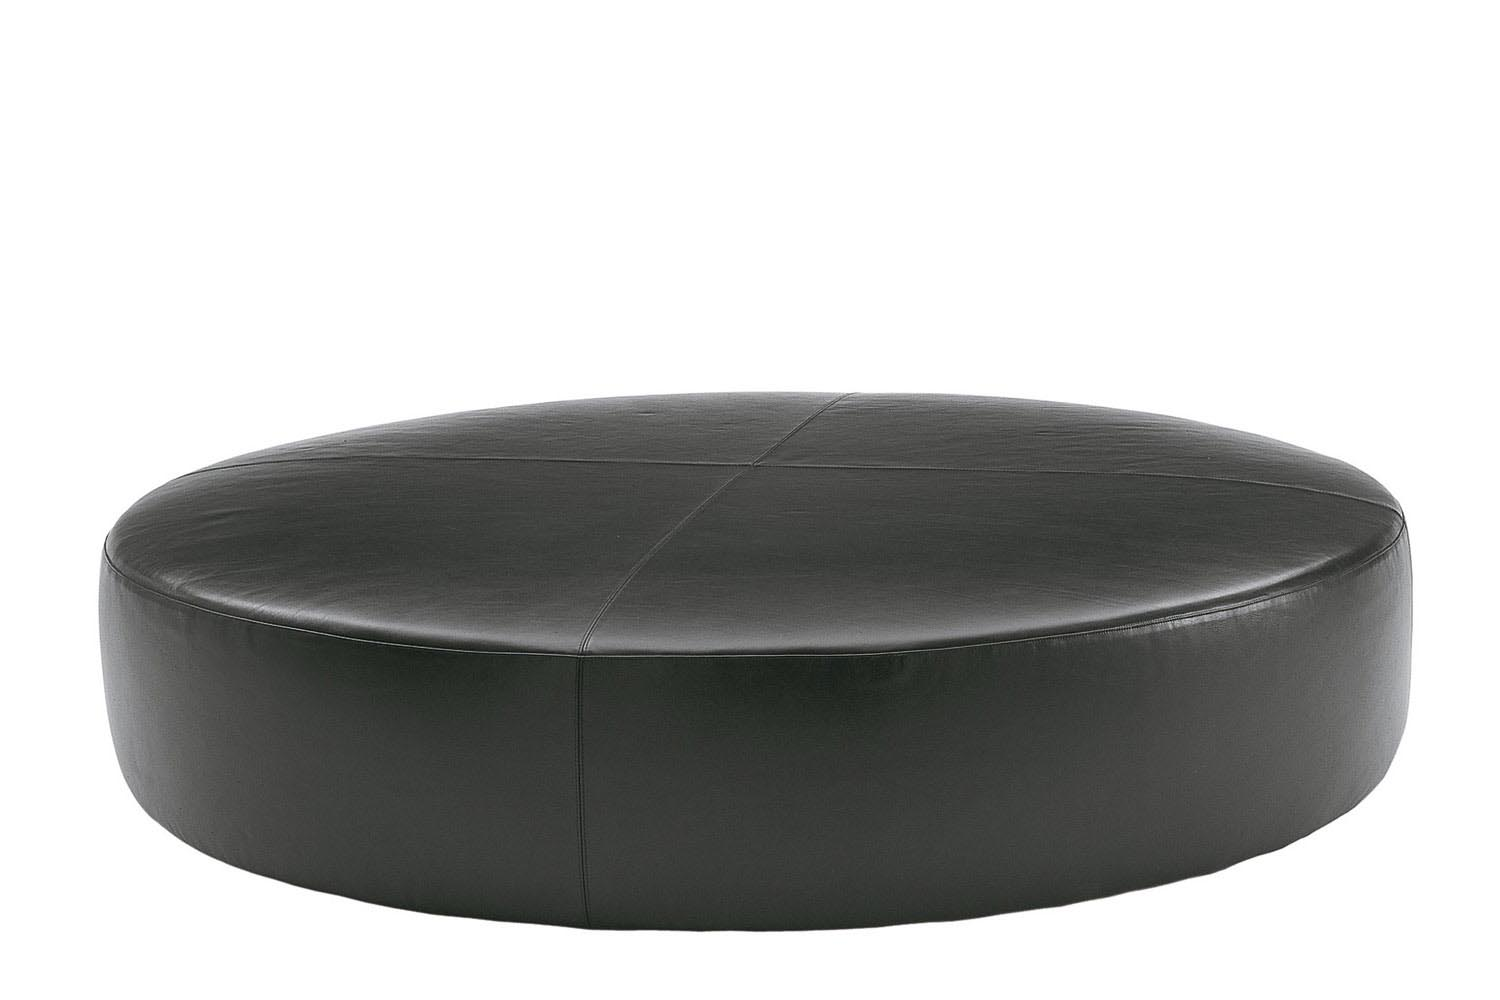 Maxalto Sofa Rund Harry Large Ottoman By Antonio Citterio For B Andb Italia